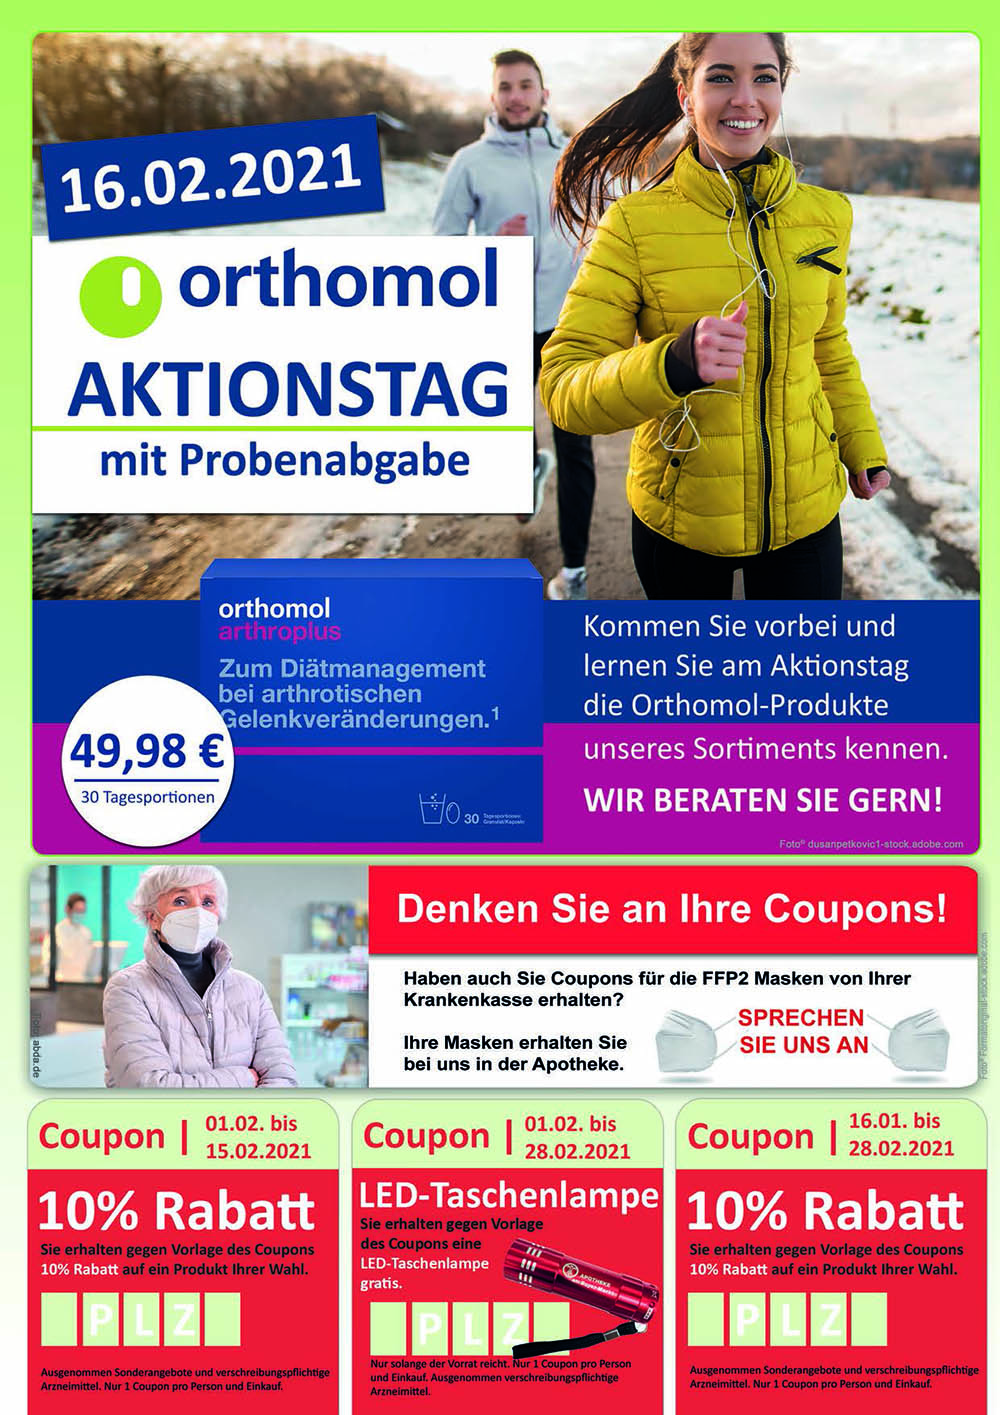 https://portal.apotheken.de/fileadmin/clubarea/00000-Angebote/46240_12086_am_boyer_markt_aktion_1.jpg